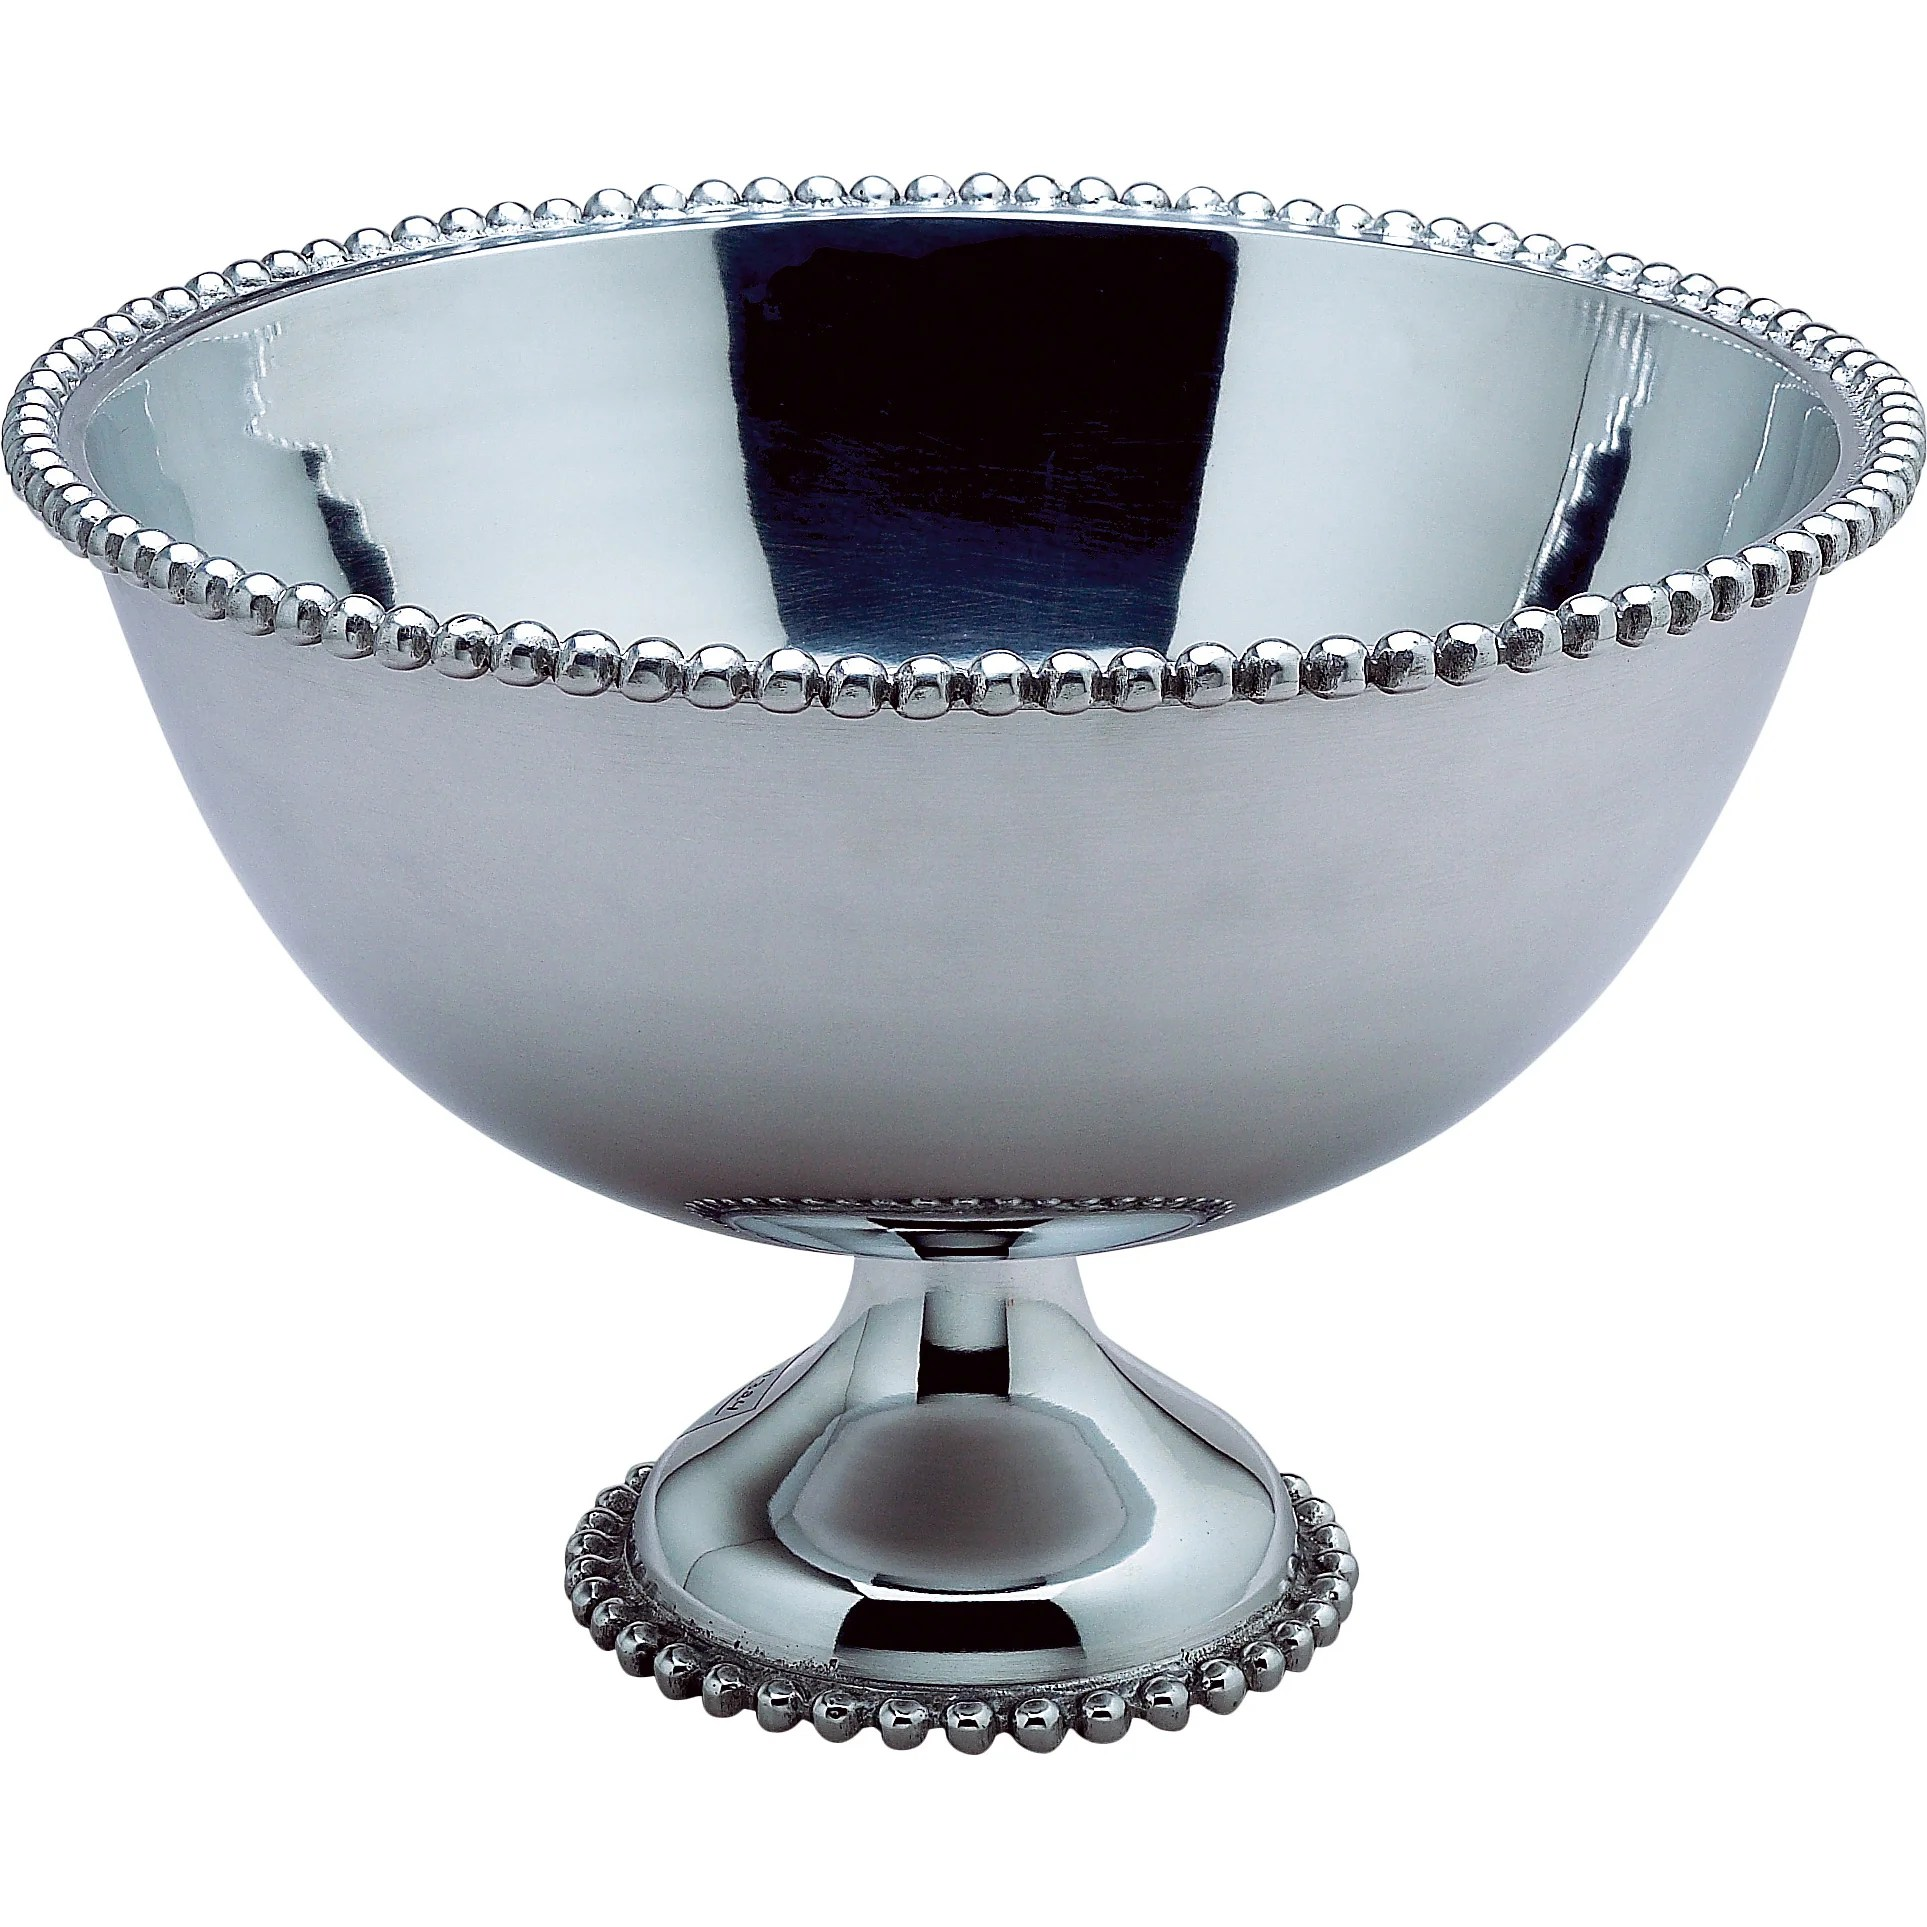 Chrome Decorative Bowl Kindwer Beaded Aluminum Punch Bowl Wayfair Ca